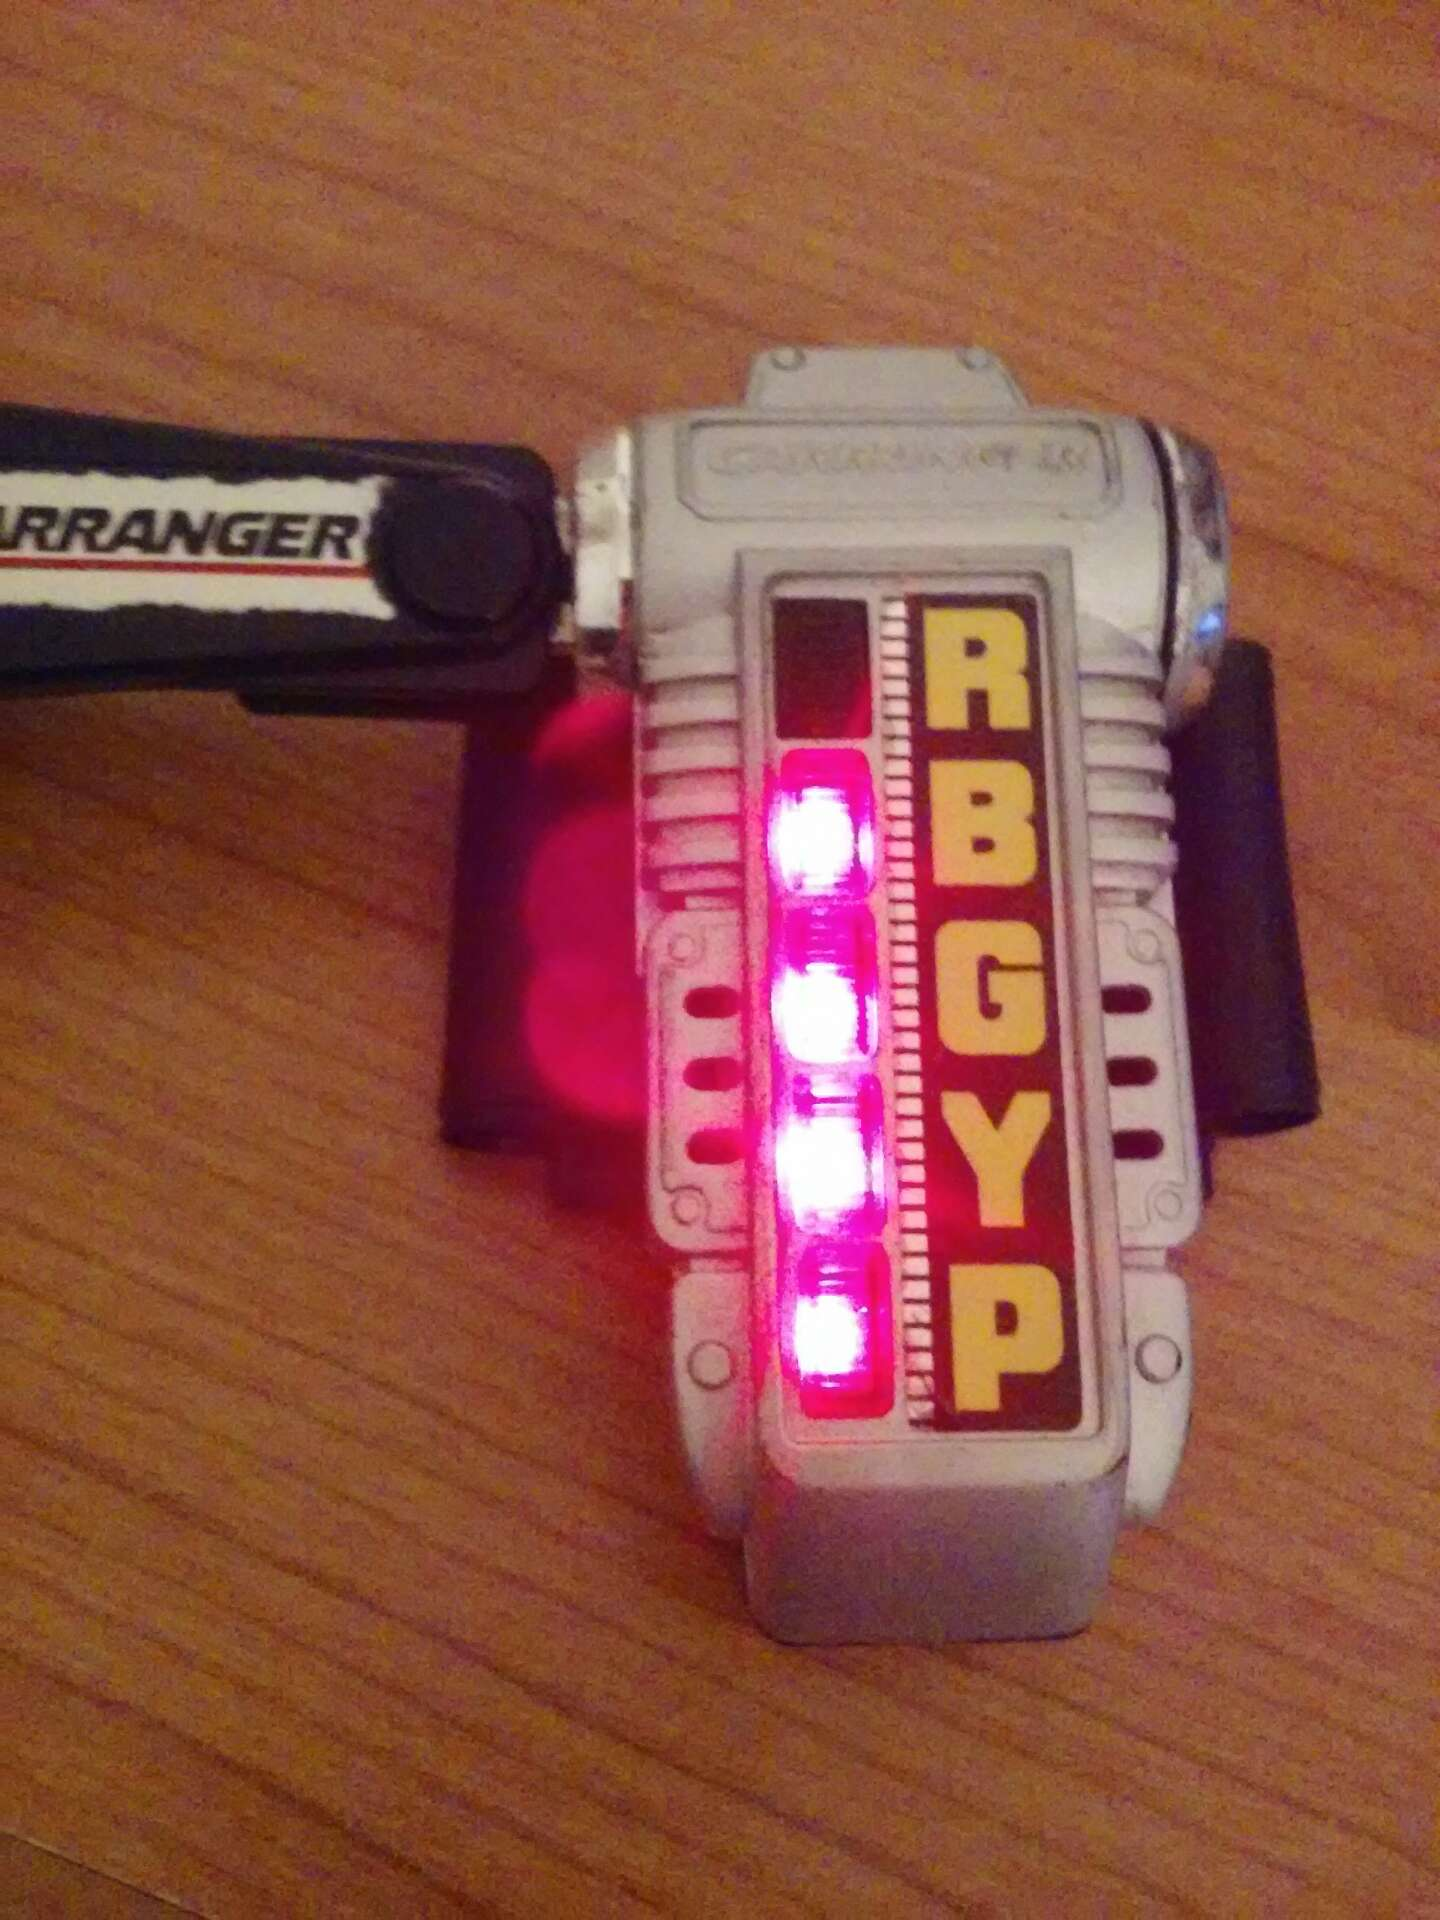 turbo morpher power rangers japanese carranger accel changer for sale in los angeles ca. Black Bedroom Furniture Sets. Home Design Ideas